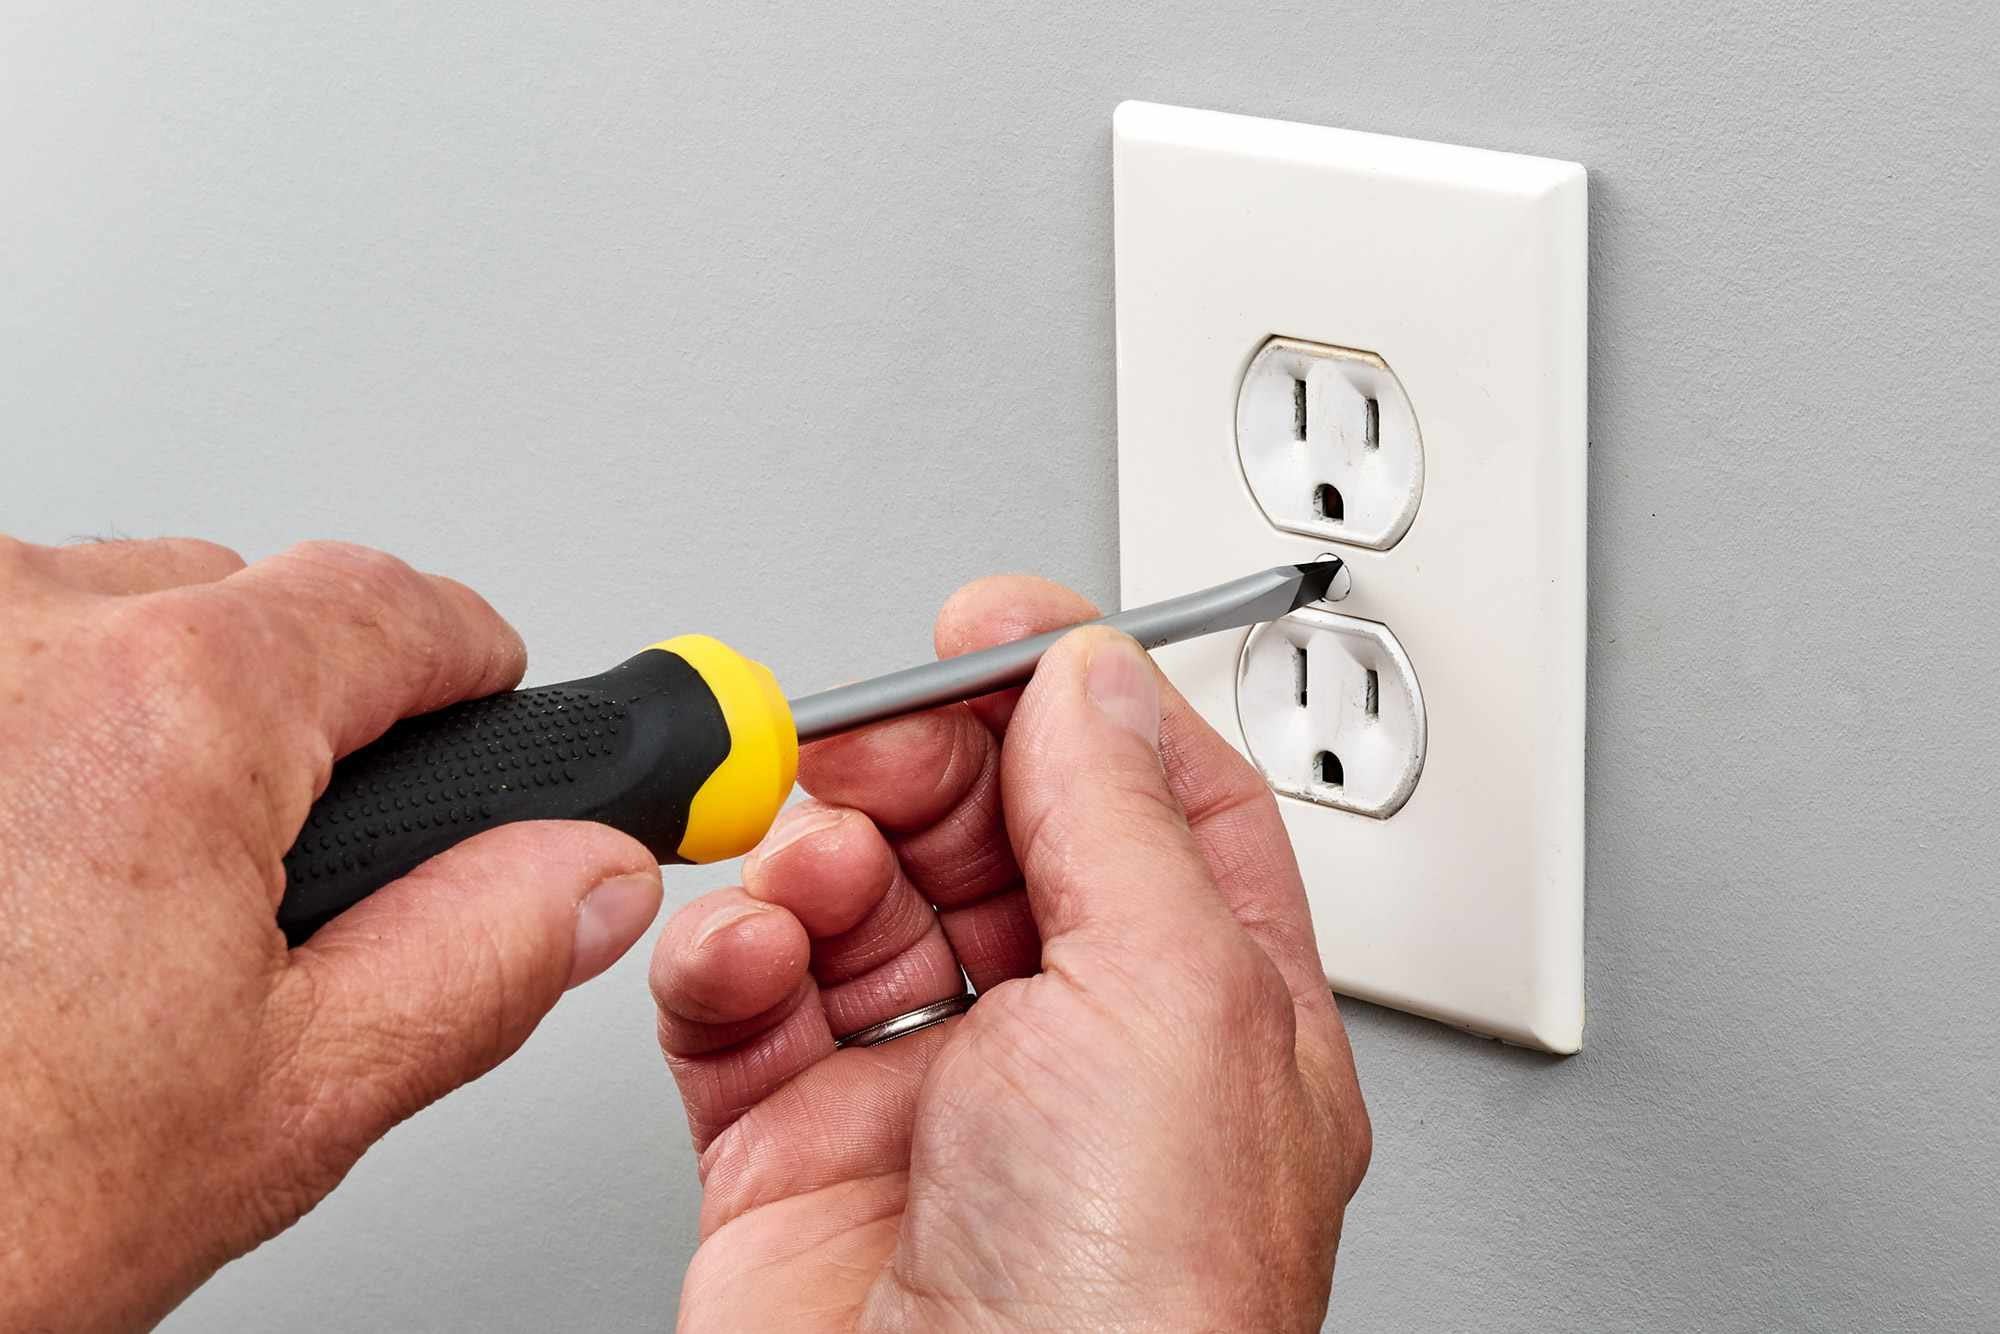 Center screw of outlet faceplate unscrewed with screwdriver